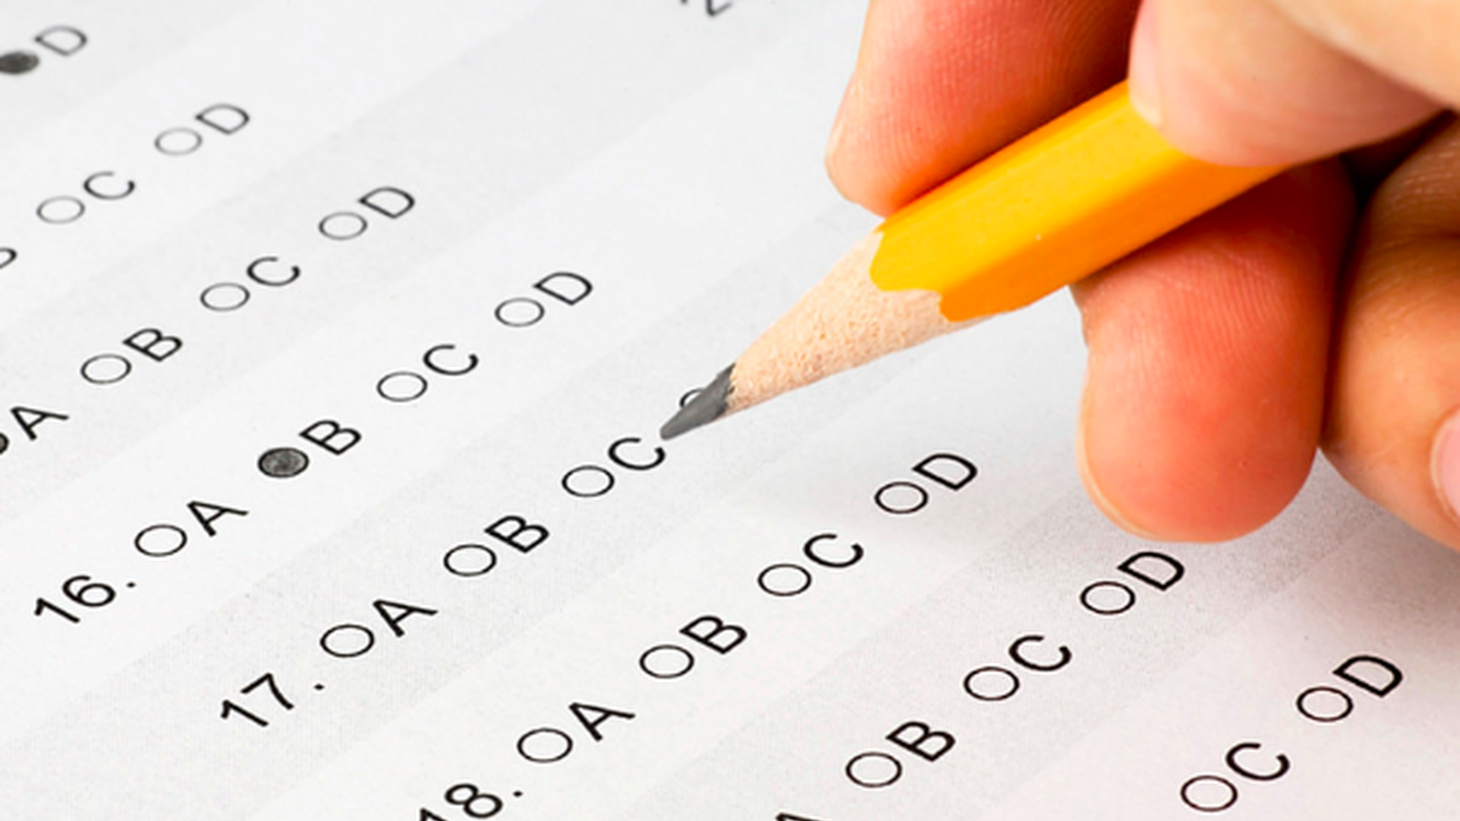 The director of a new documentary about the SAT and ACT found there is near agreement -- from tutors to college admissions officials -- that the tests do not measure intelligence or knowledge.